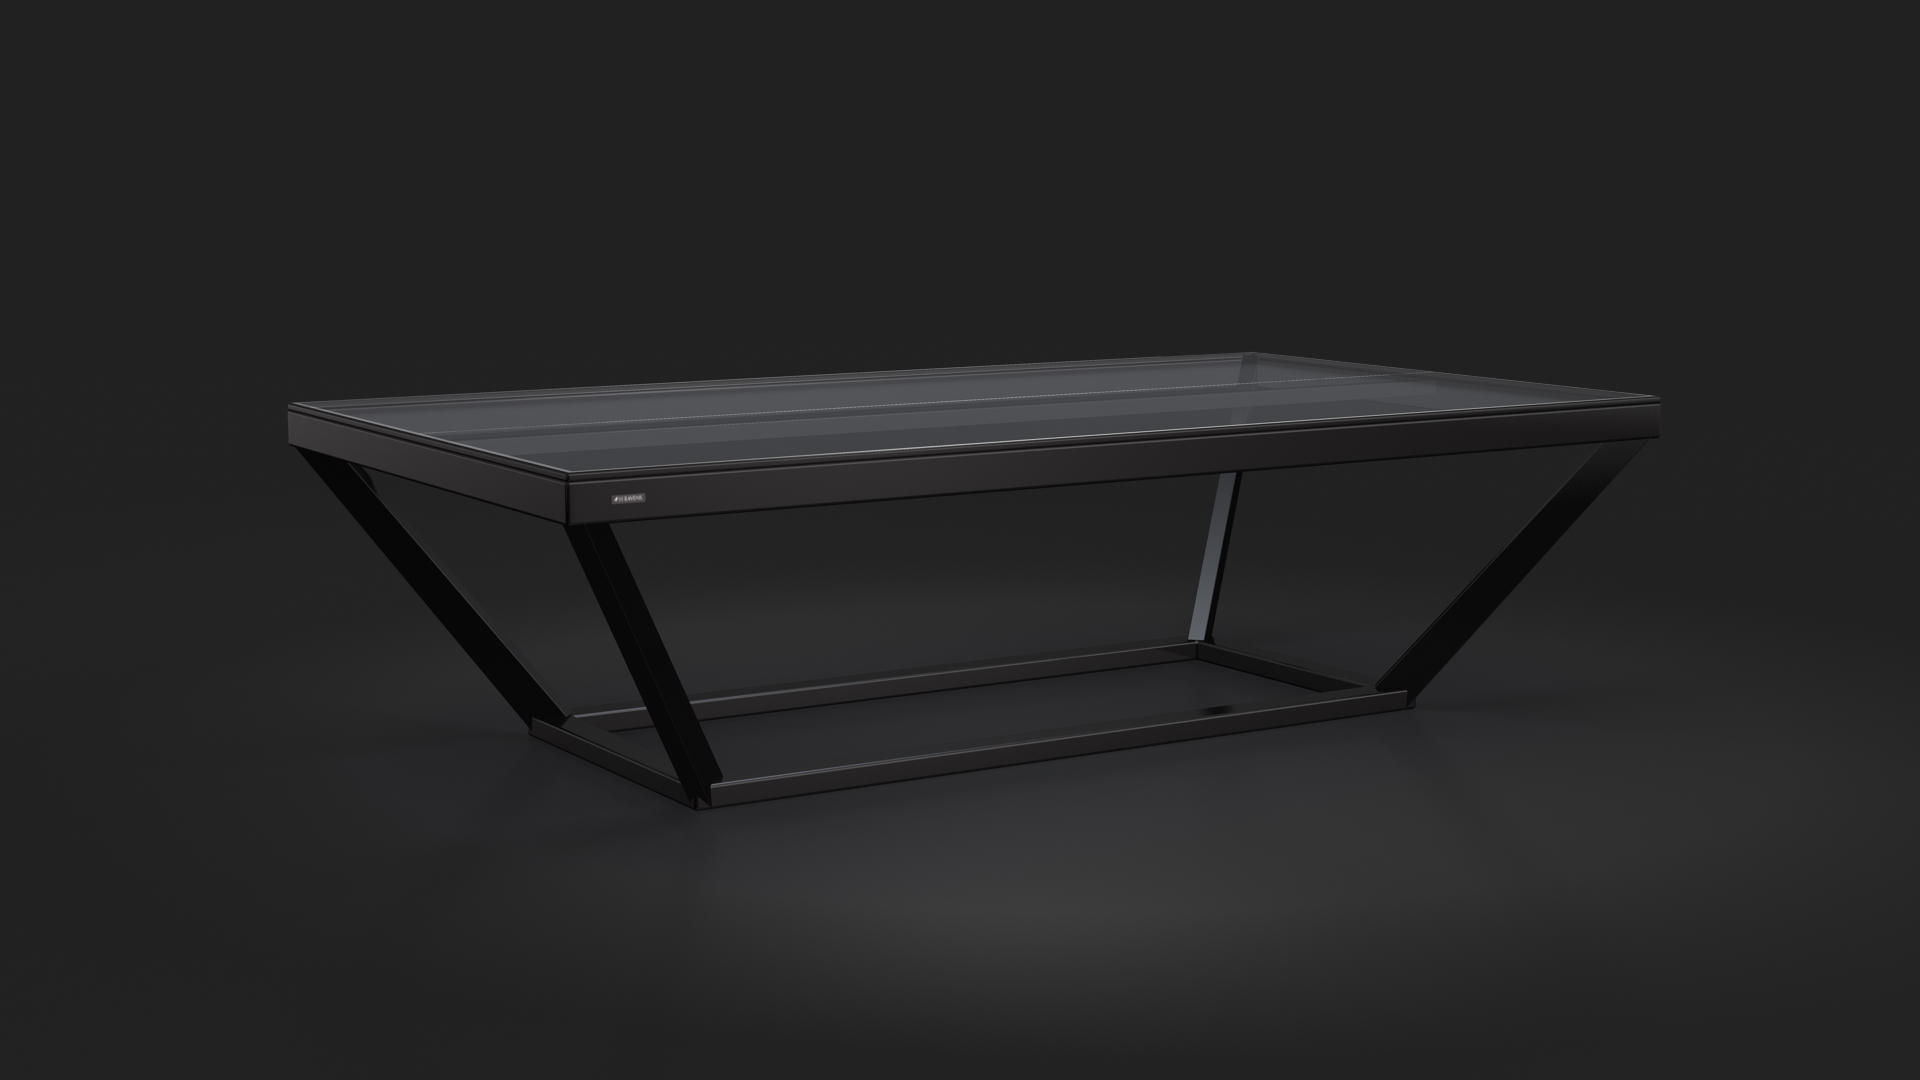 Copy of Vitro Table Tennis Table in Black